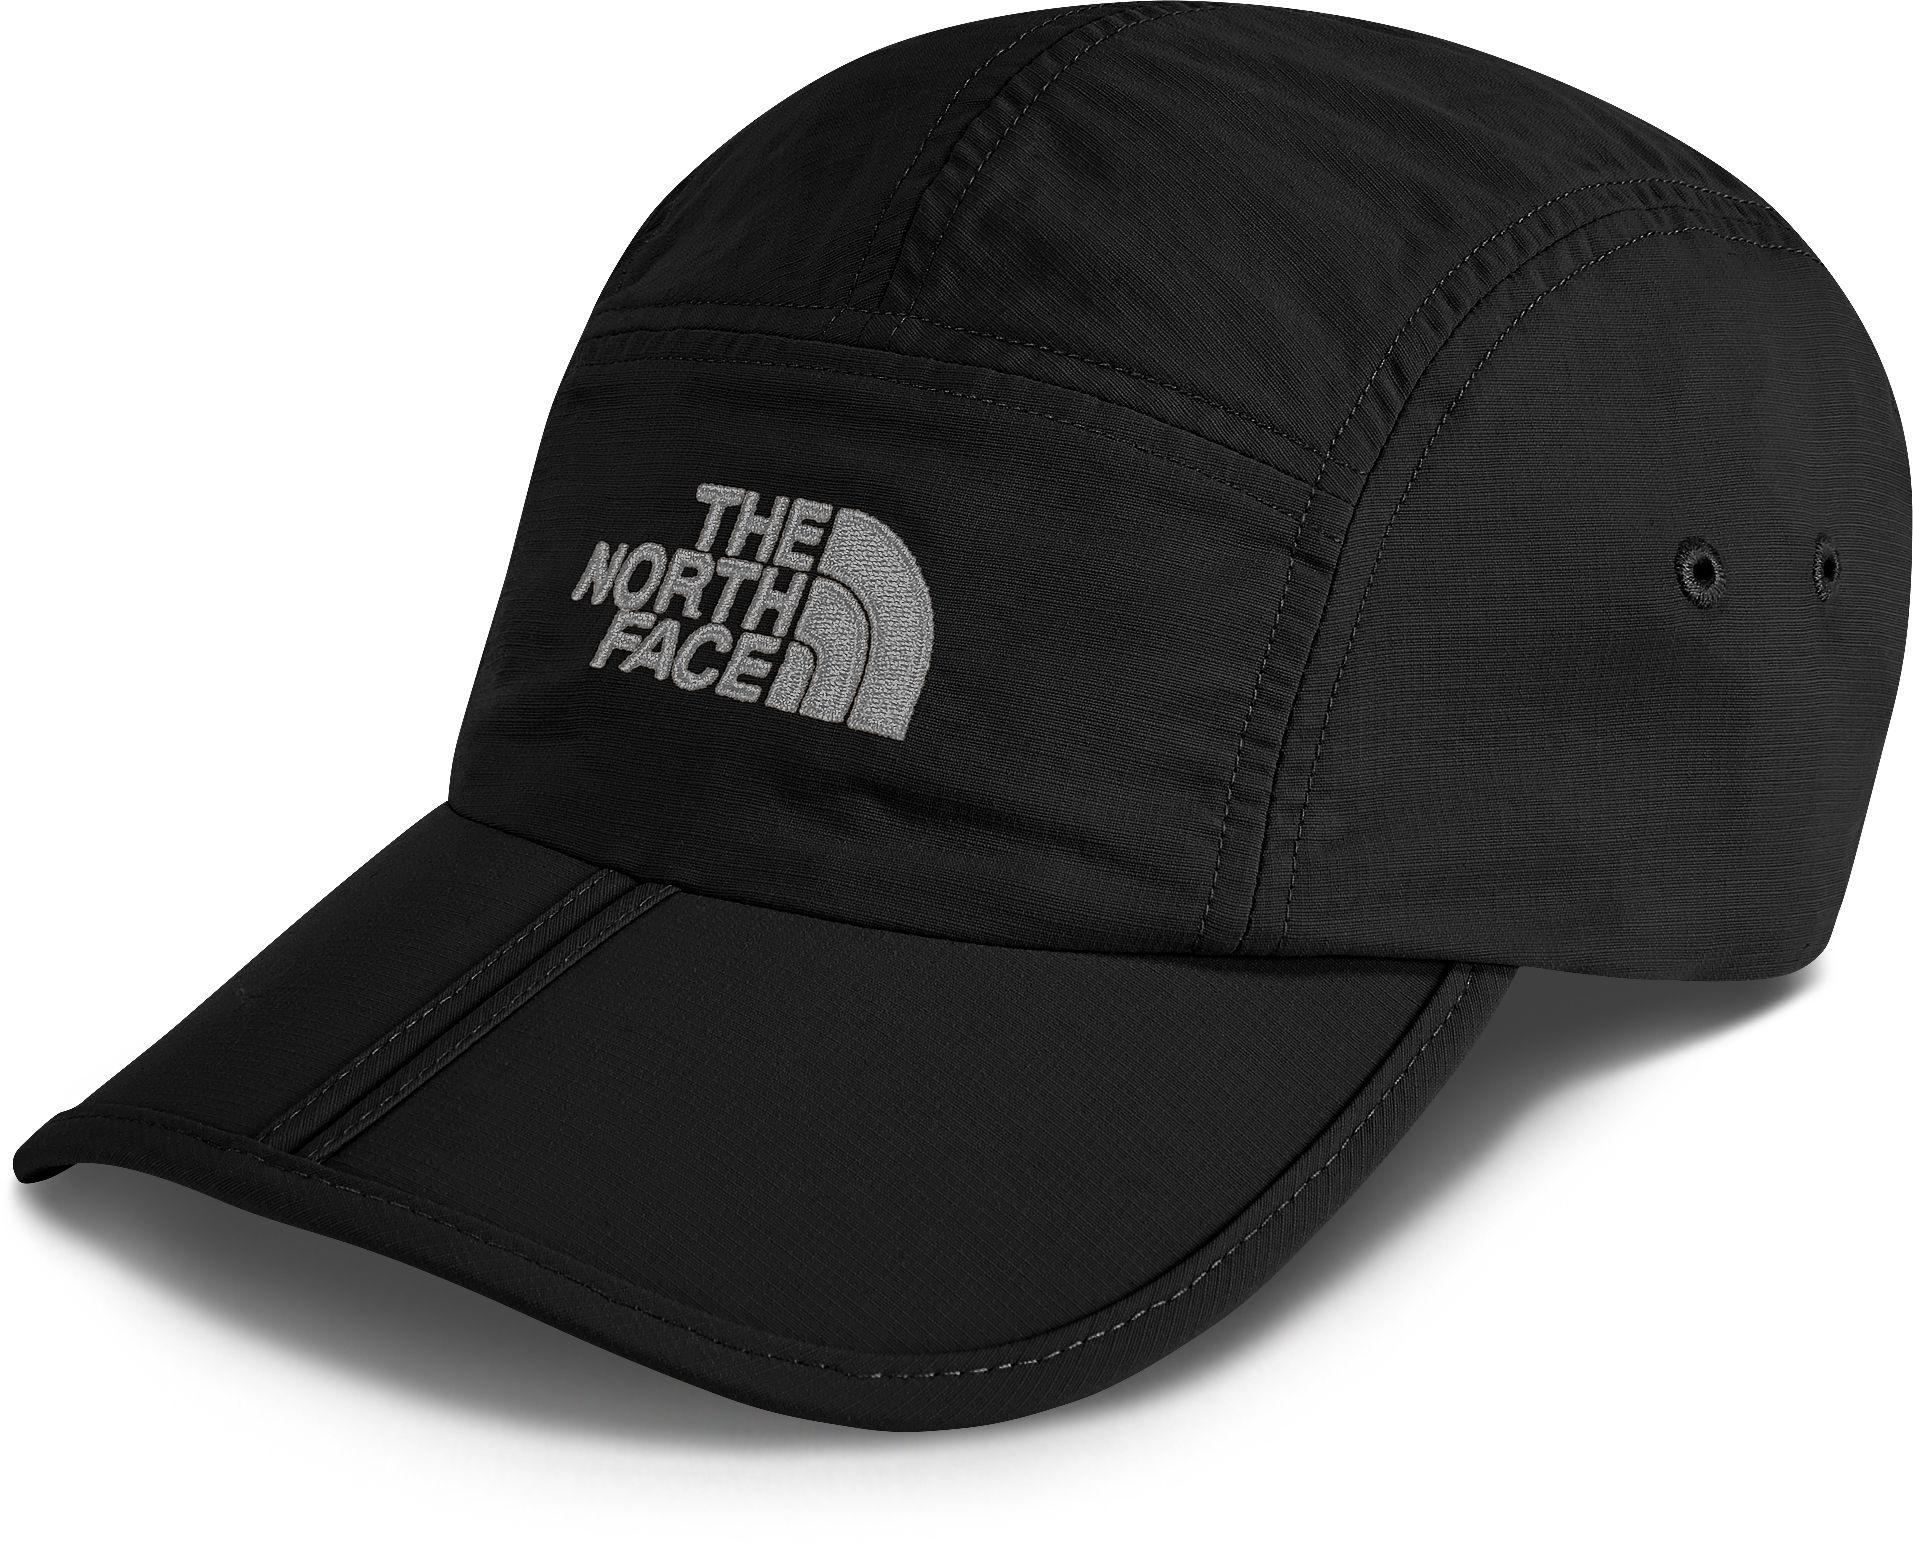 Lyst - The North Face Horizon Folding Bill Cap in Black for Men 82054ea9c3d1